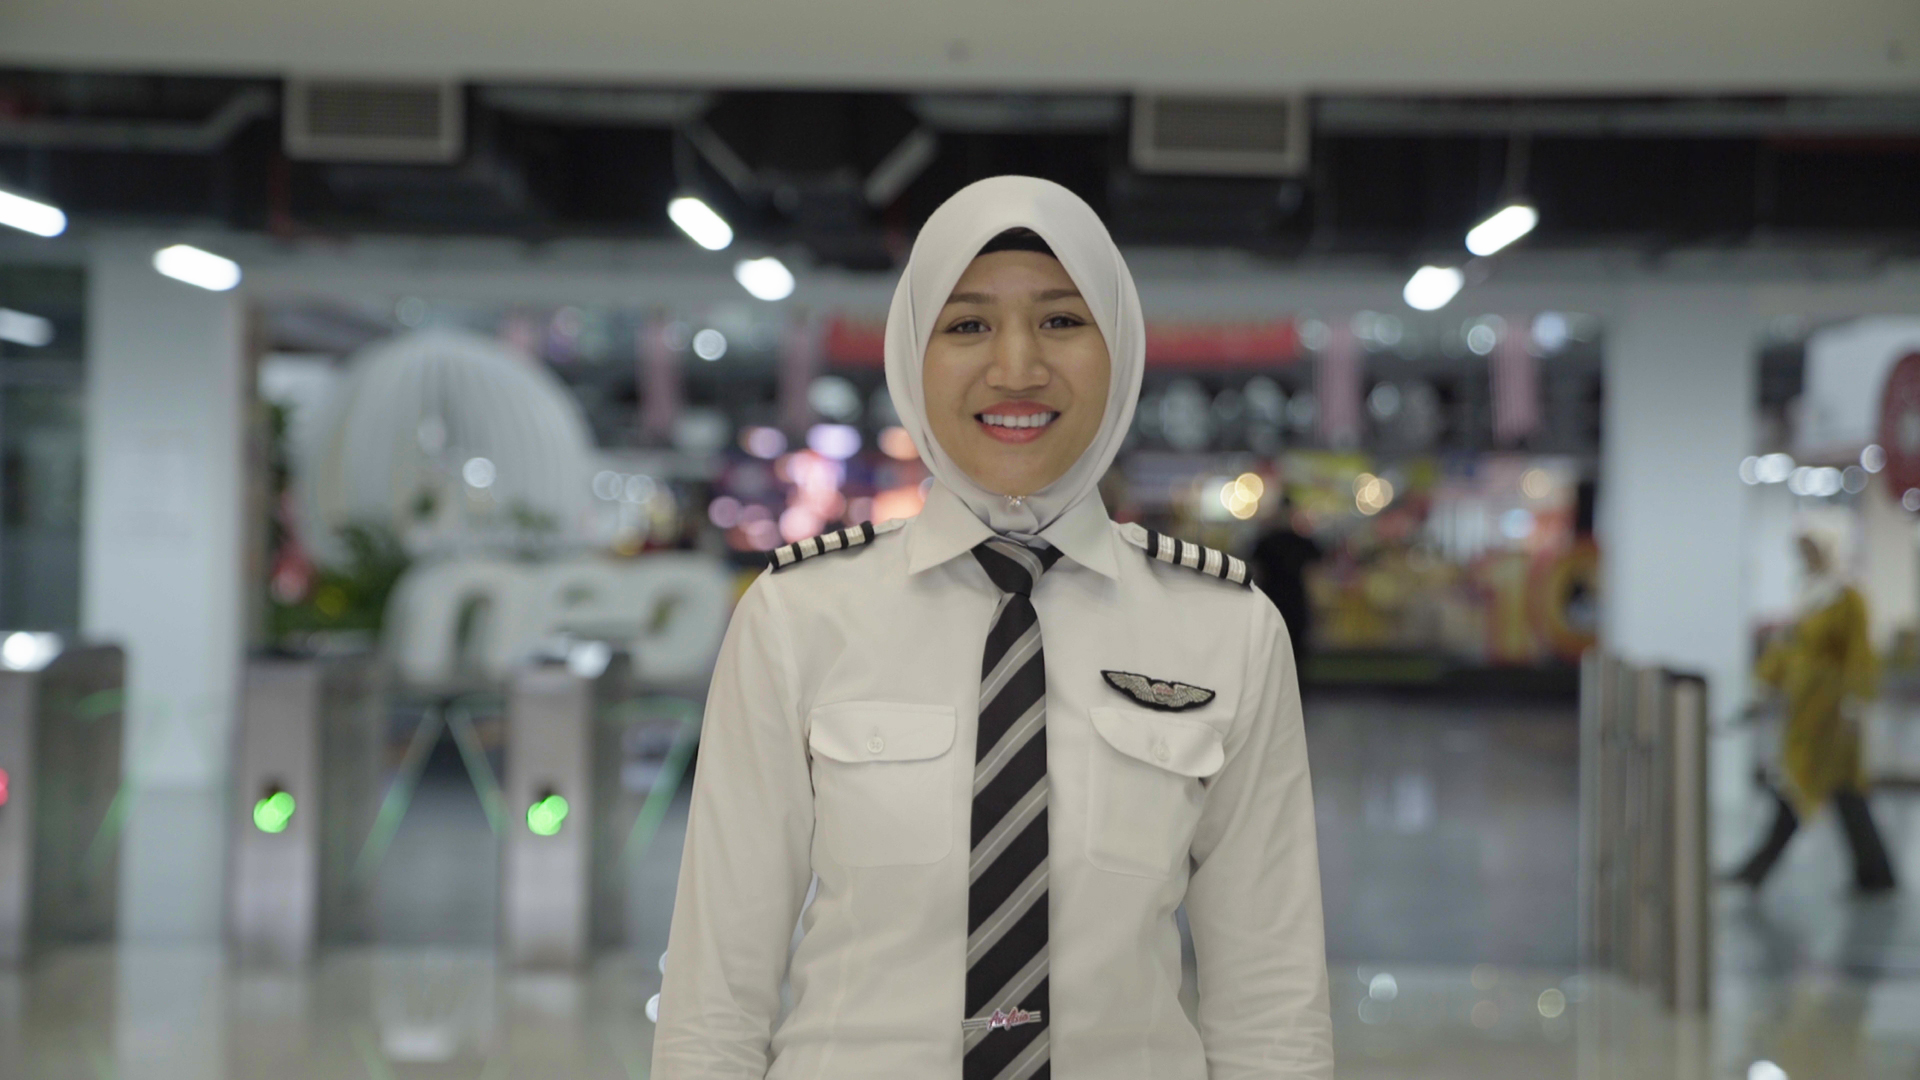 I was the first female in my flying school. Having the support of AirAsia has allowed me to aim higher and dream bigger.- Captain Aquila Ismail -